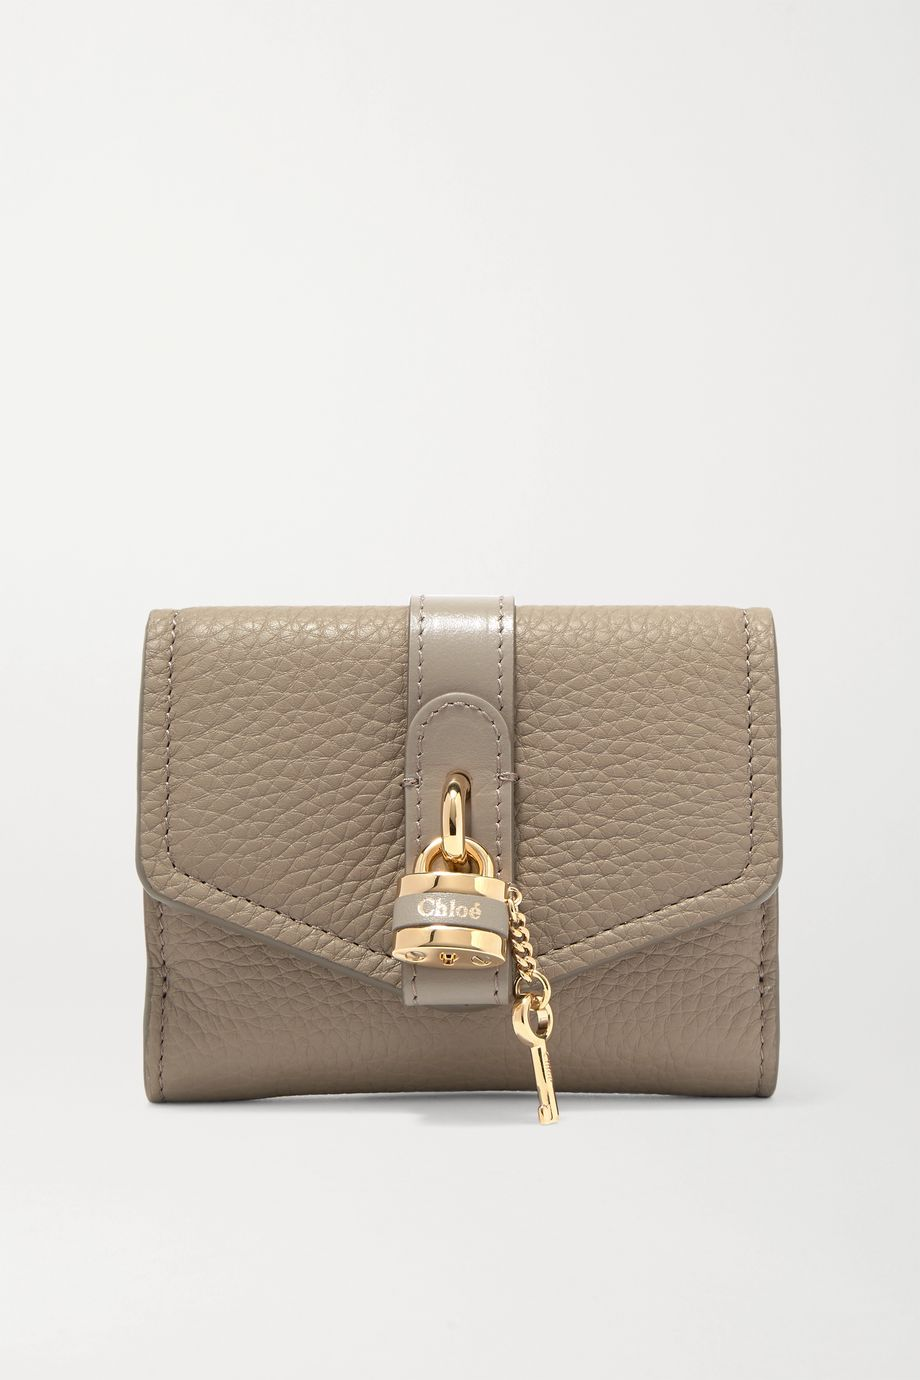 Chloé Aby embellished textured-leather wallet